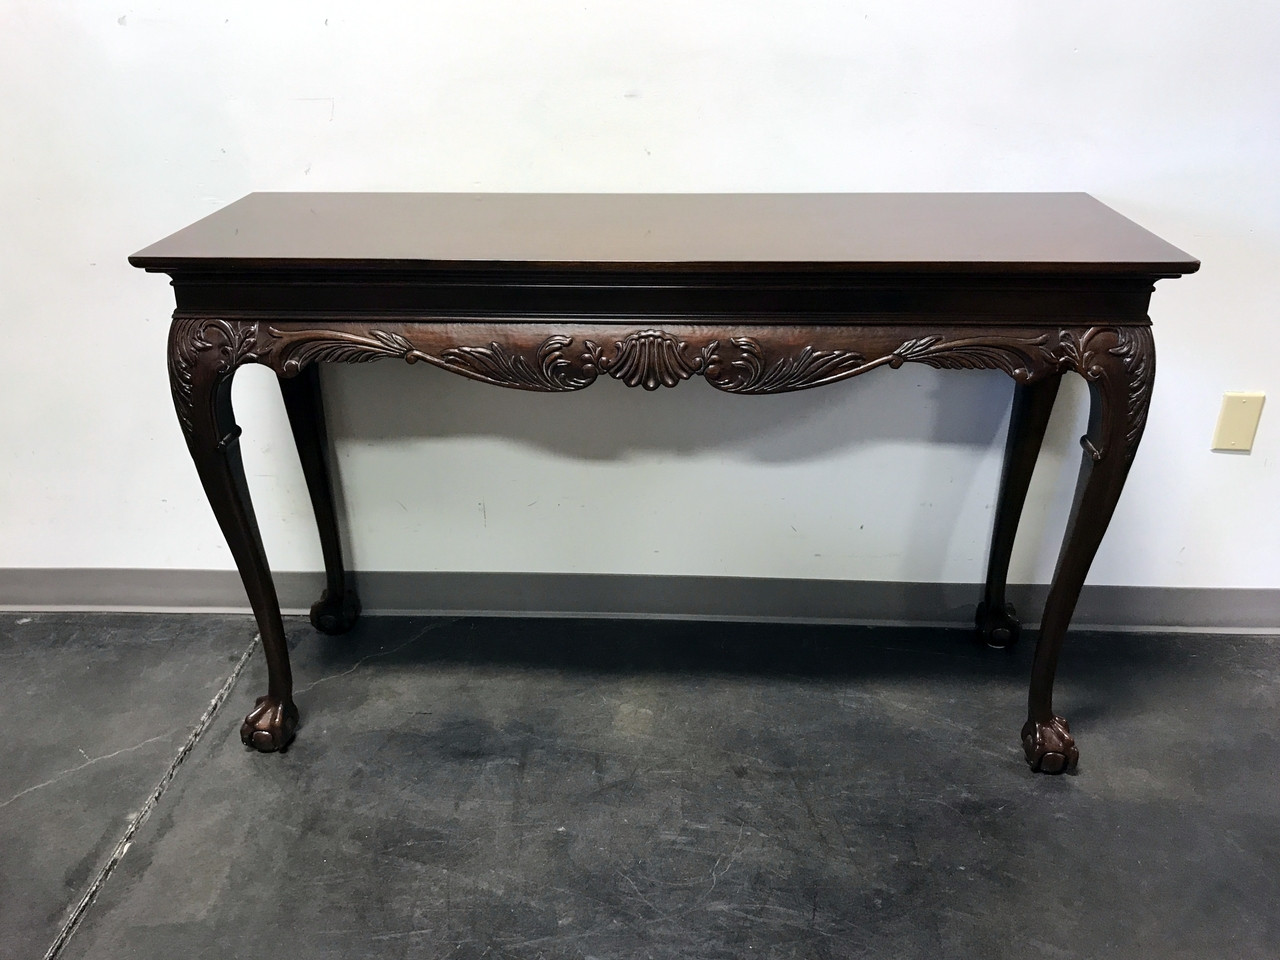 SOLD OUT DREXEL HERITAGE Heirlooms Chippendale Inlaid Mahogany Ball